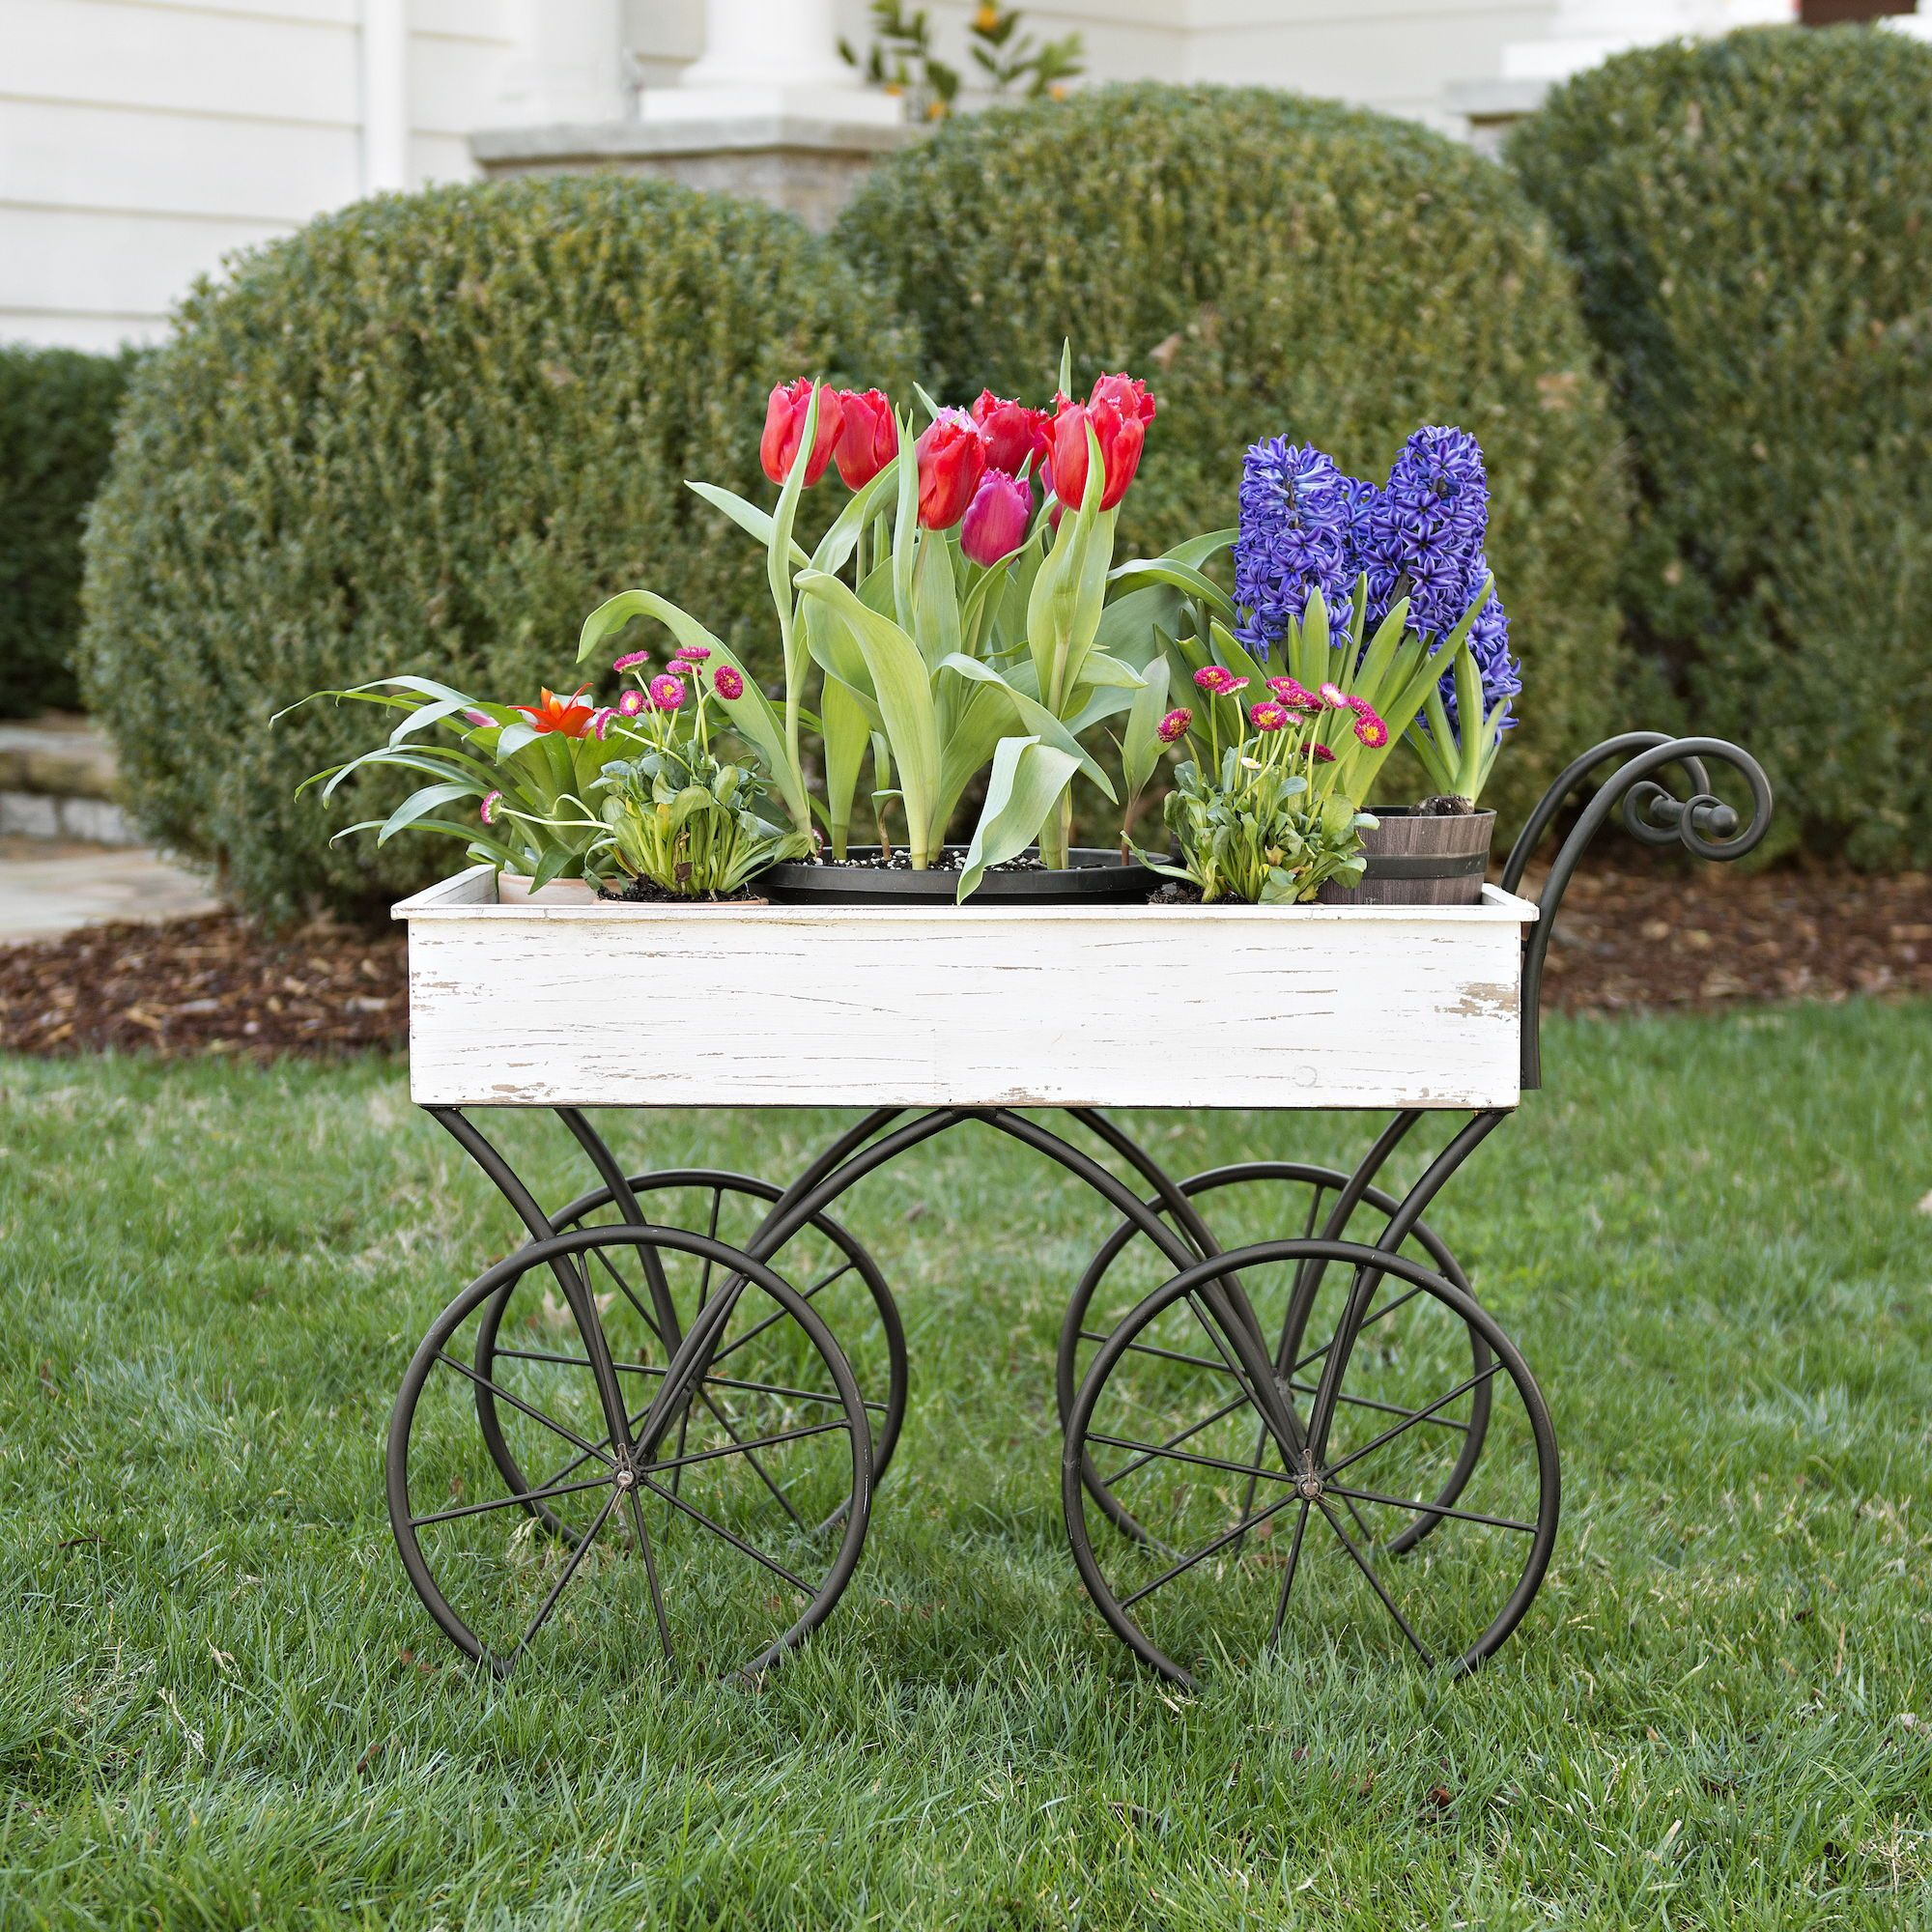 Cream Decorative Wagon | Outdoor spaces, Planters and Flowers